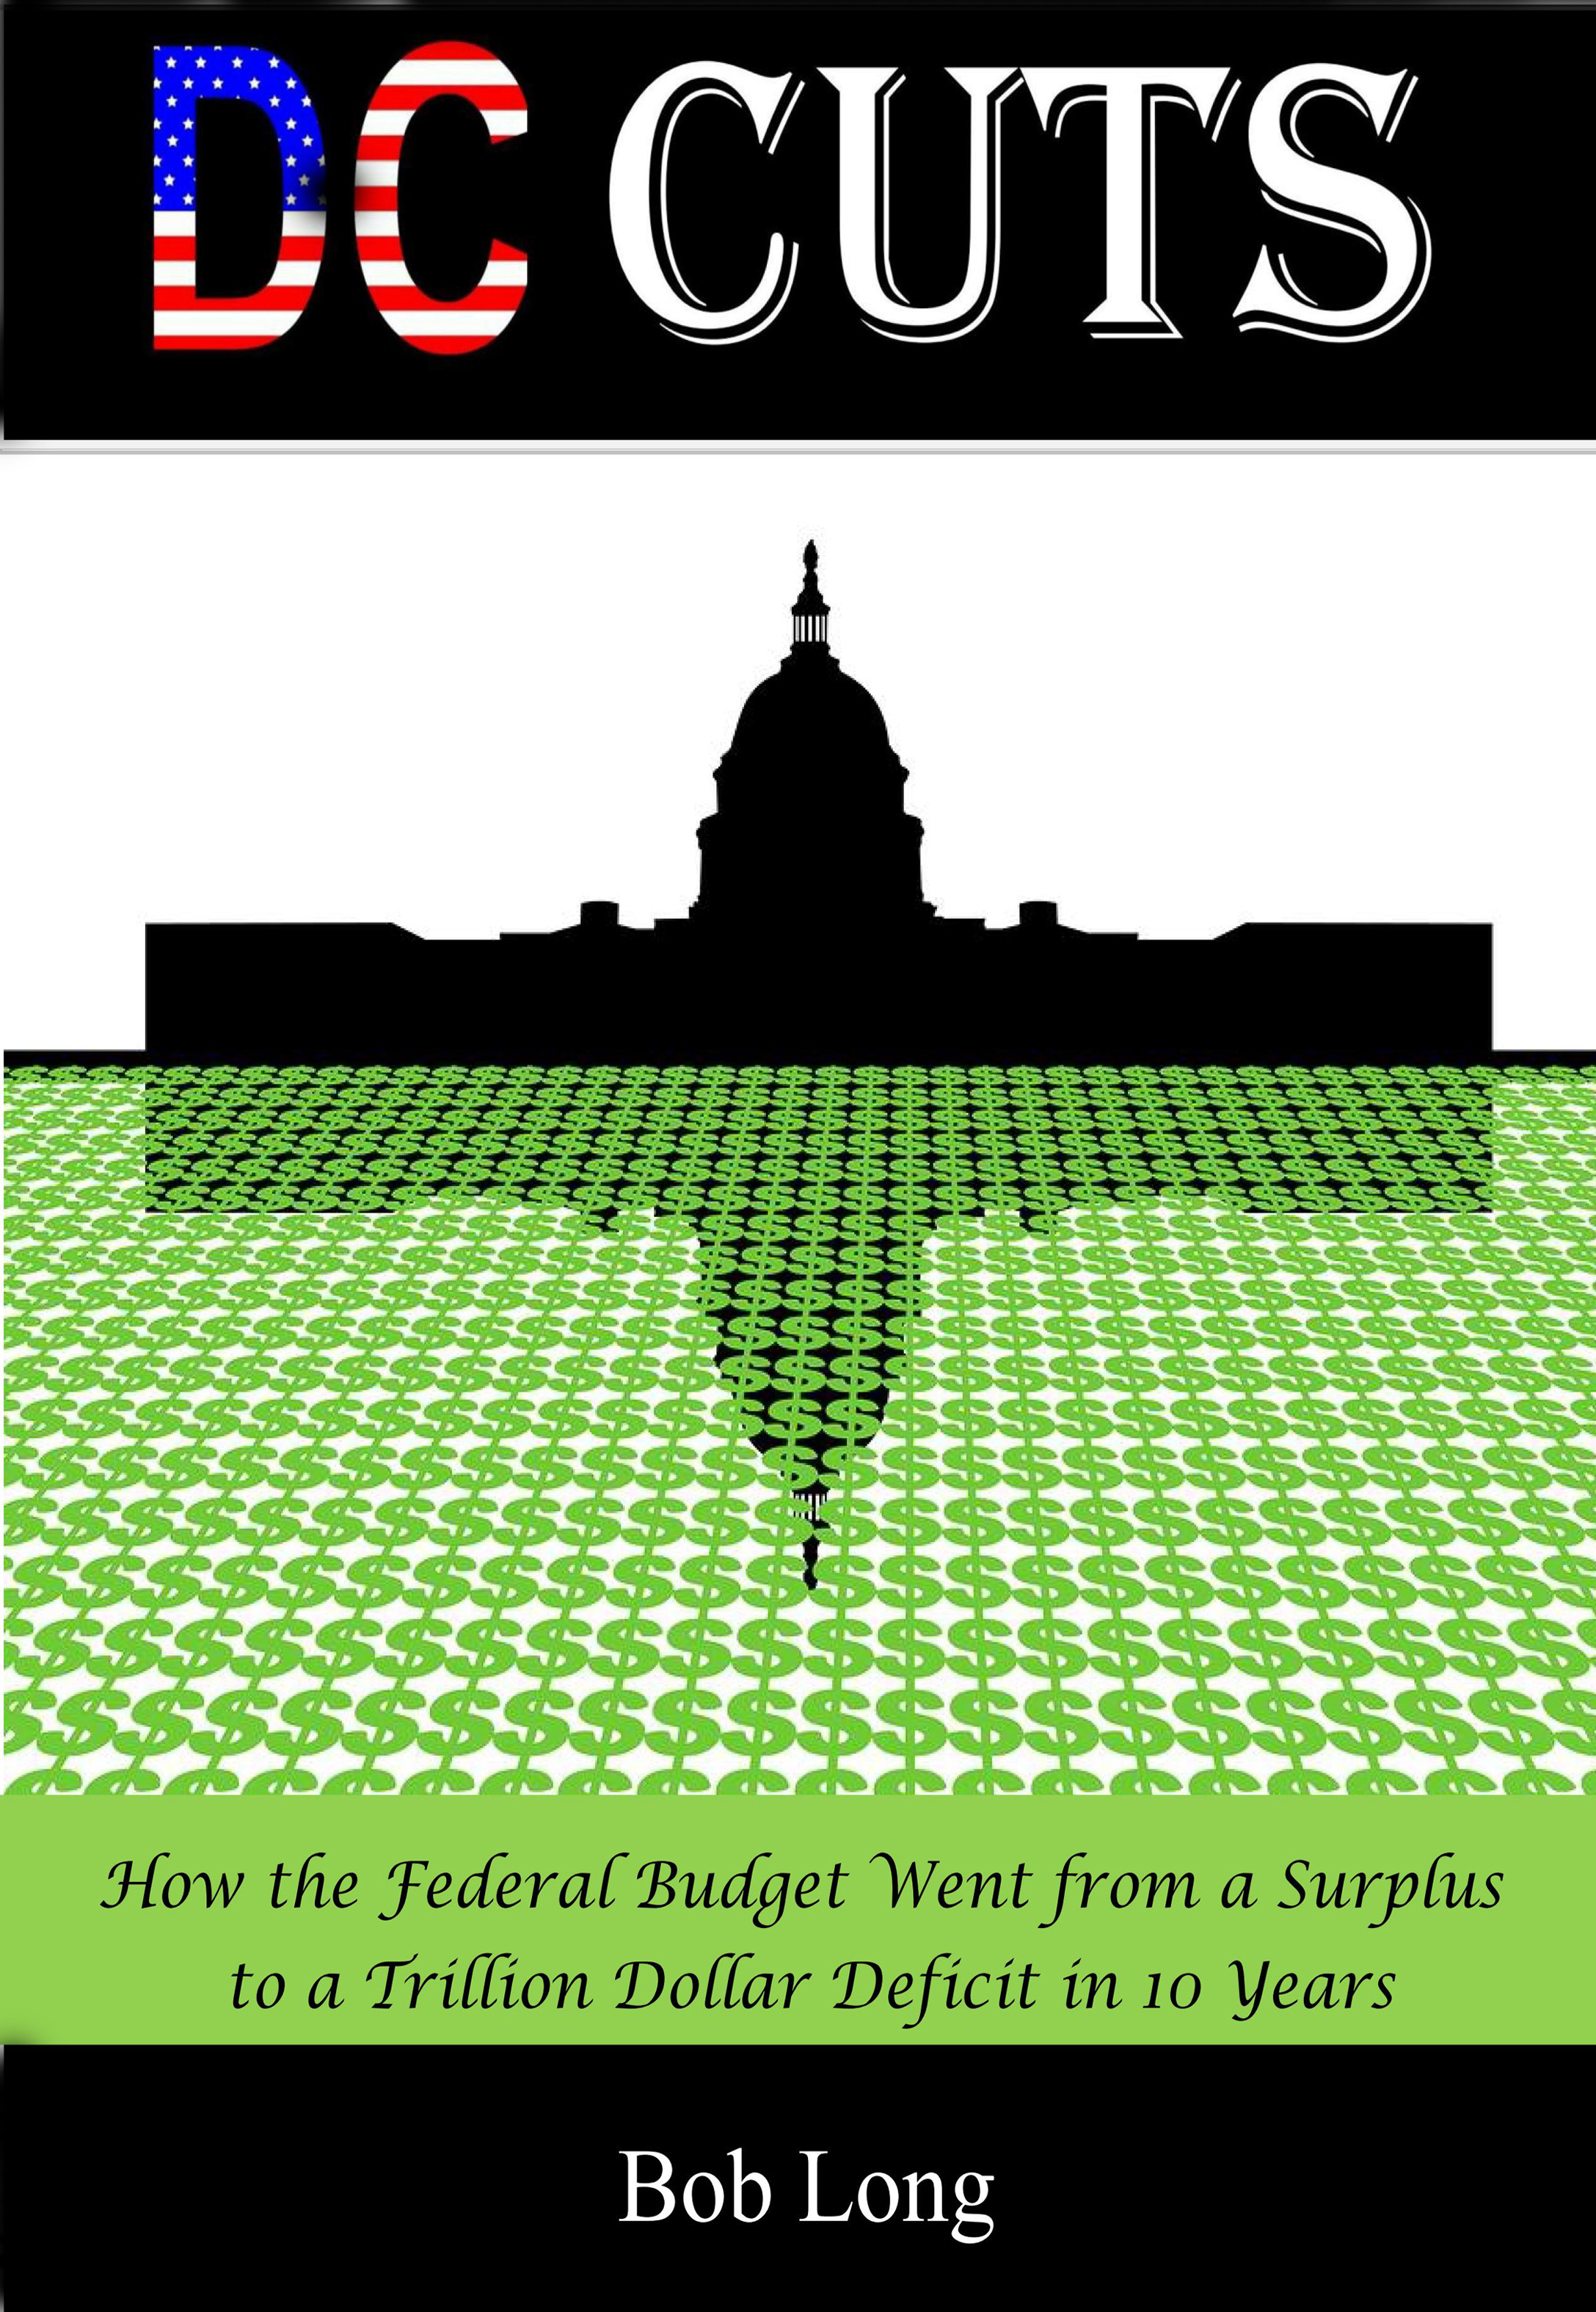 DC Cuts: How the Federal Budget Went from a Surplus to a Trillion Dollar Deficit in 10 Years